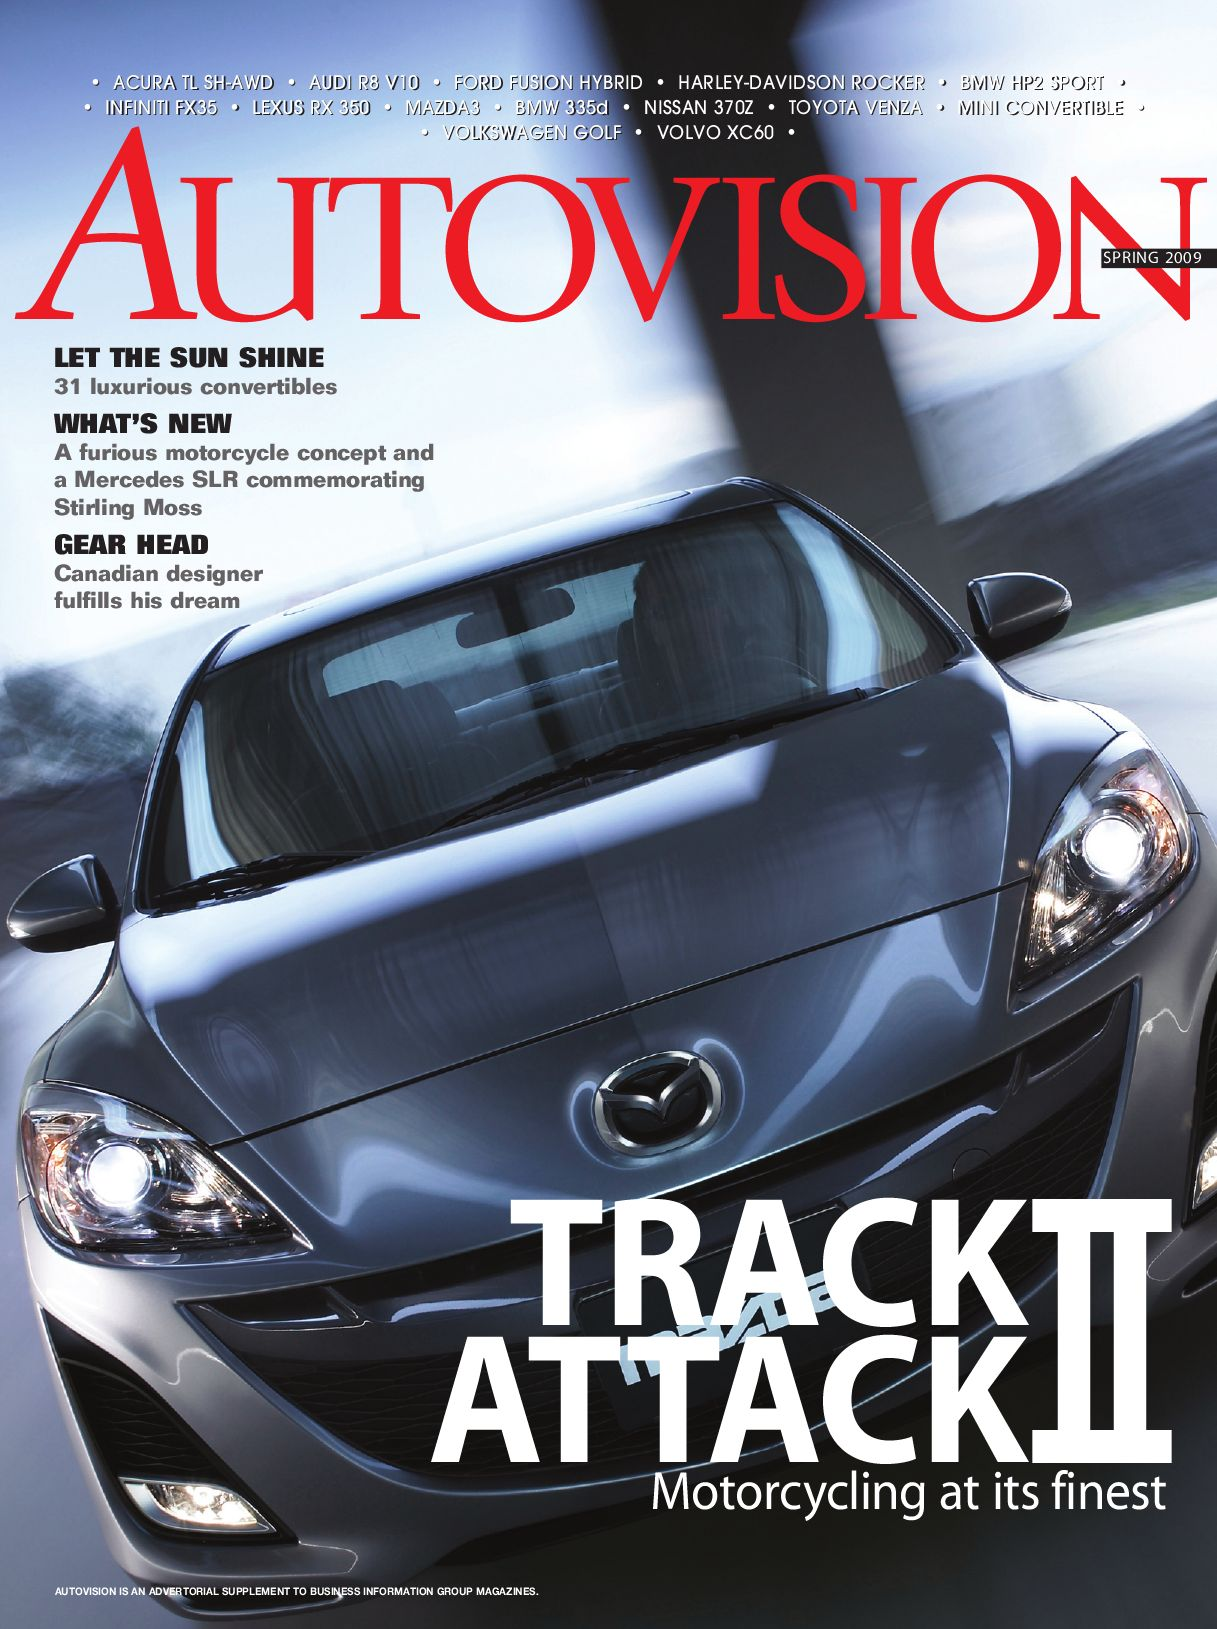 Autovision Spring Issue 2009 By Annex Business Media Issuu Super Beetle Macpherson Strut Front End Exploded Diagram Posted Sun